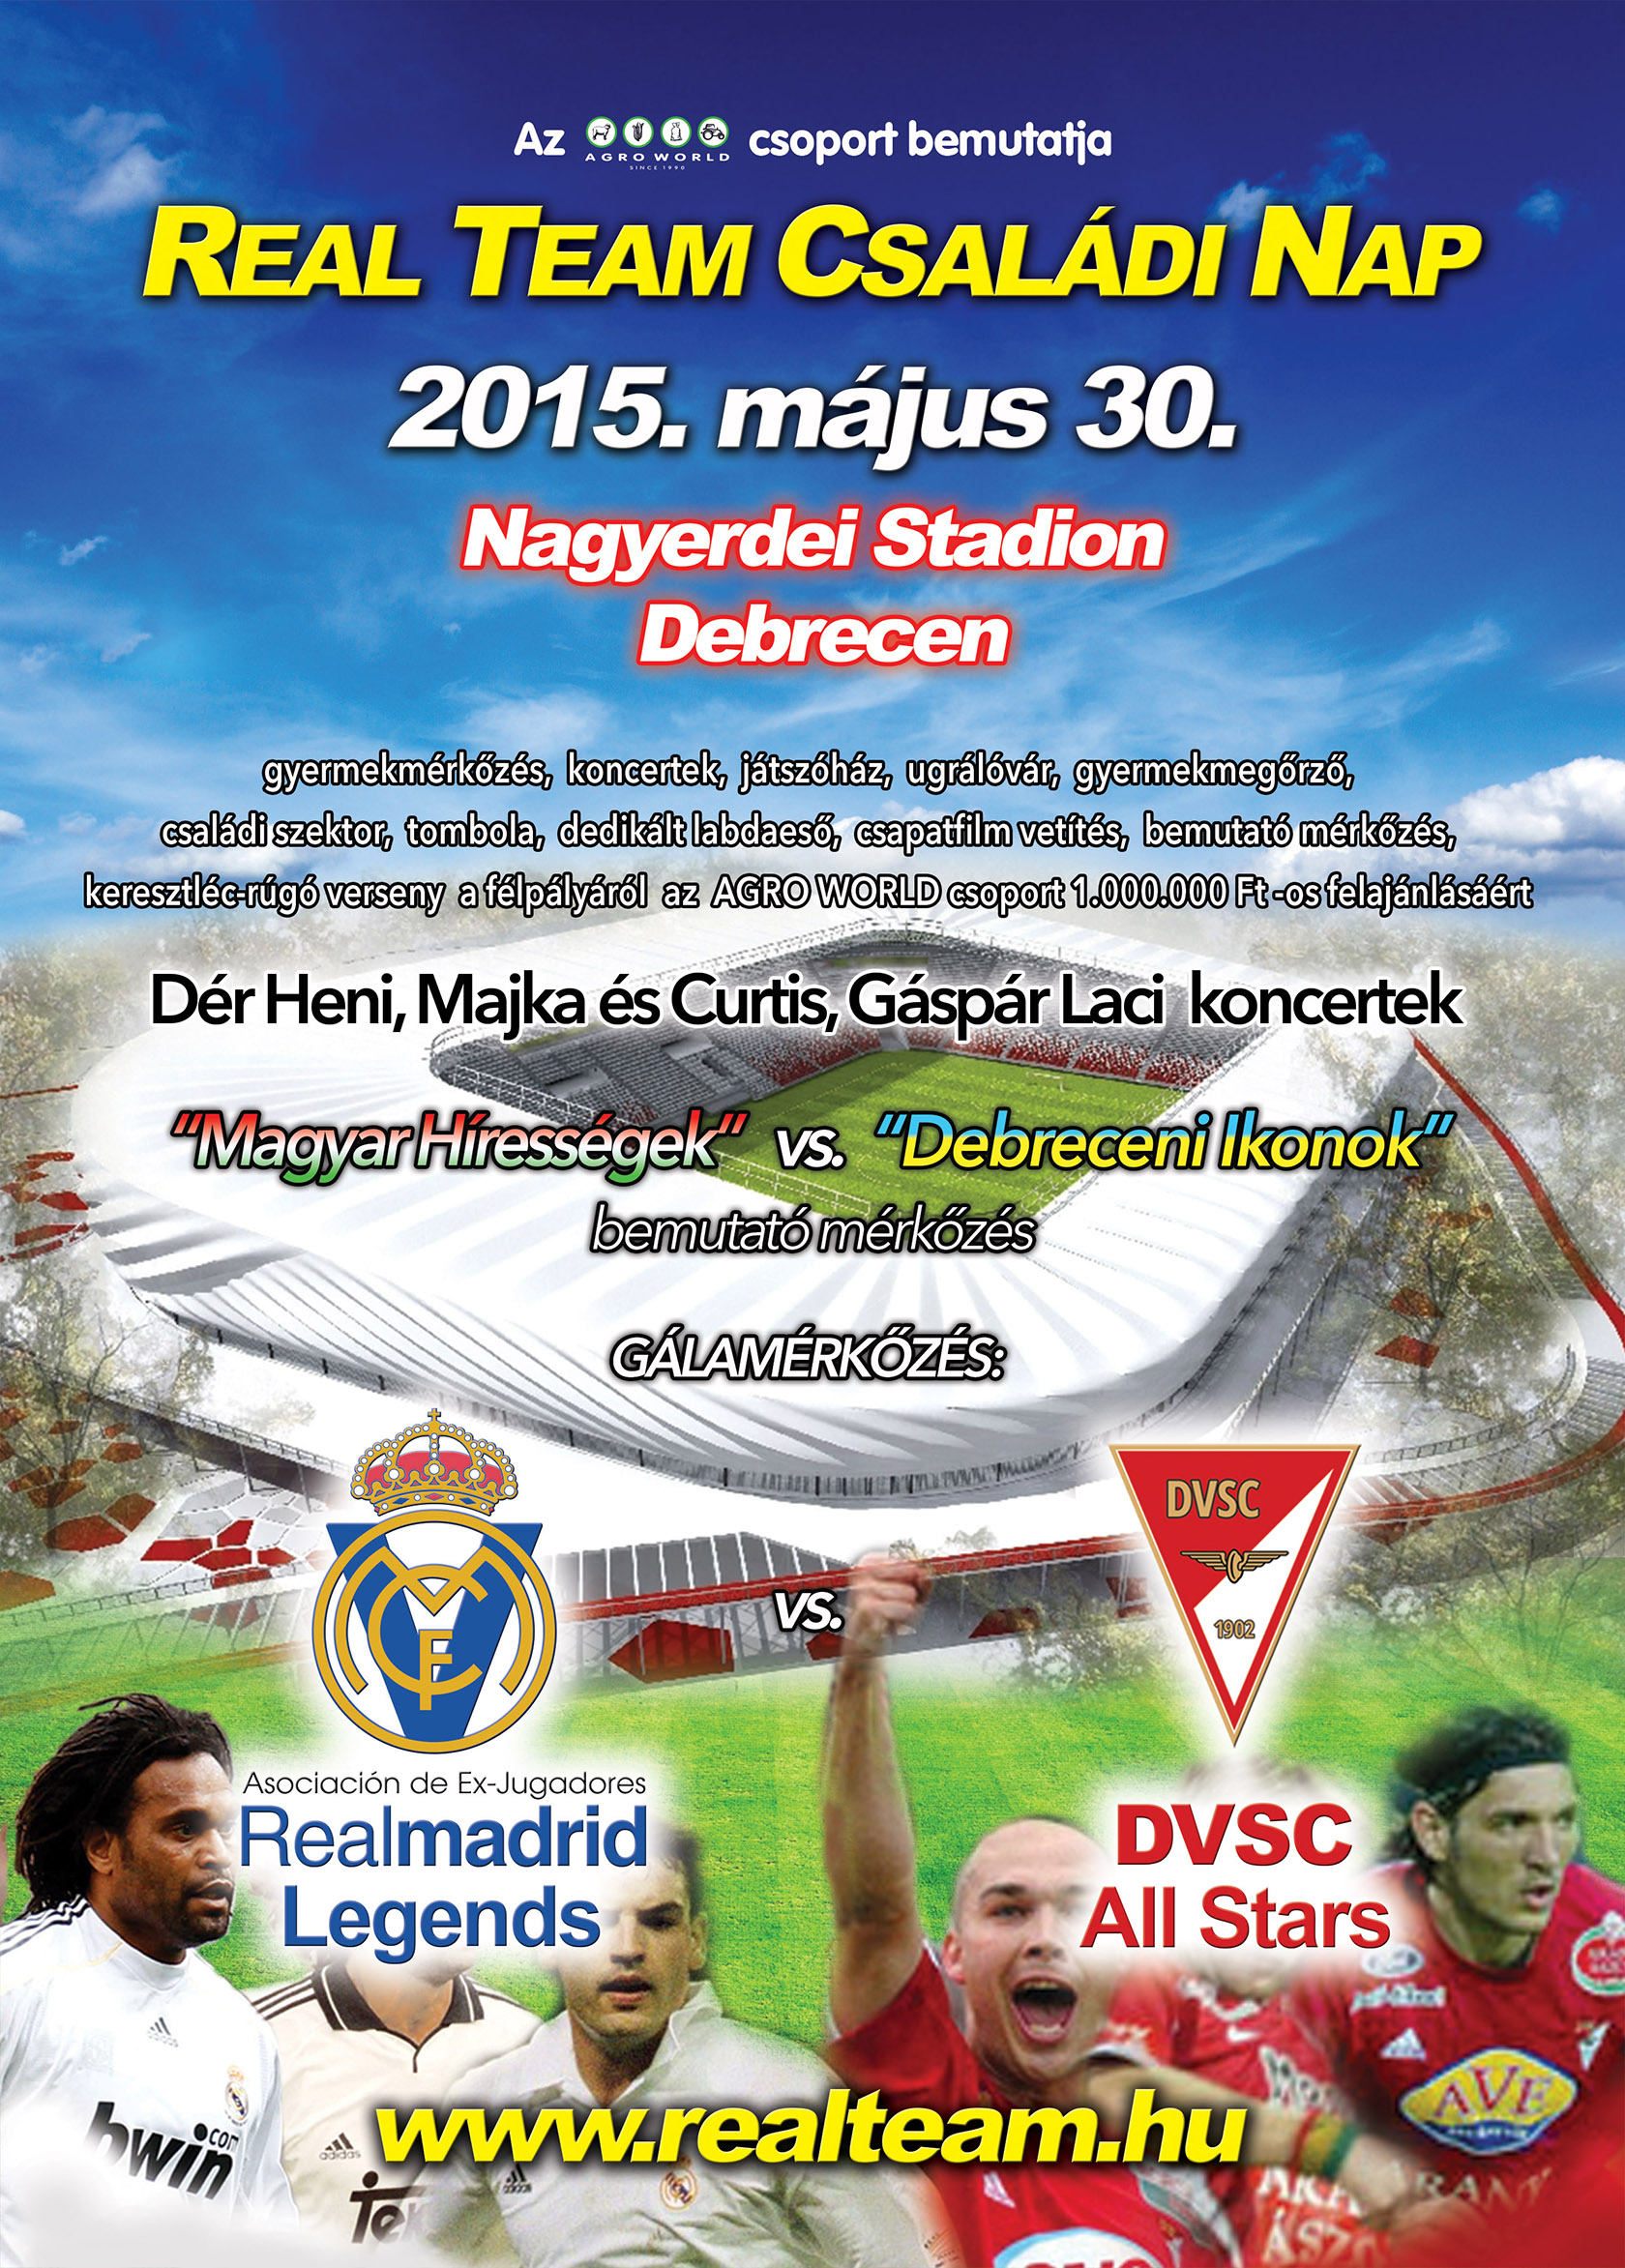 Real Team Családi Nap - Real Madrid Legends - DVSC All Stars - 2015. május 30.